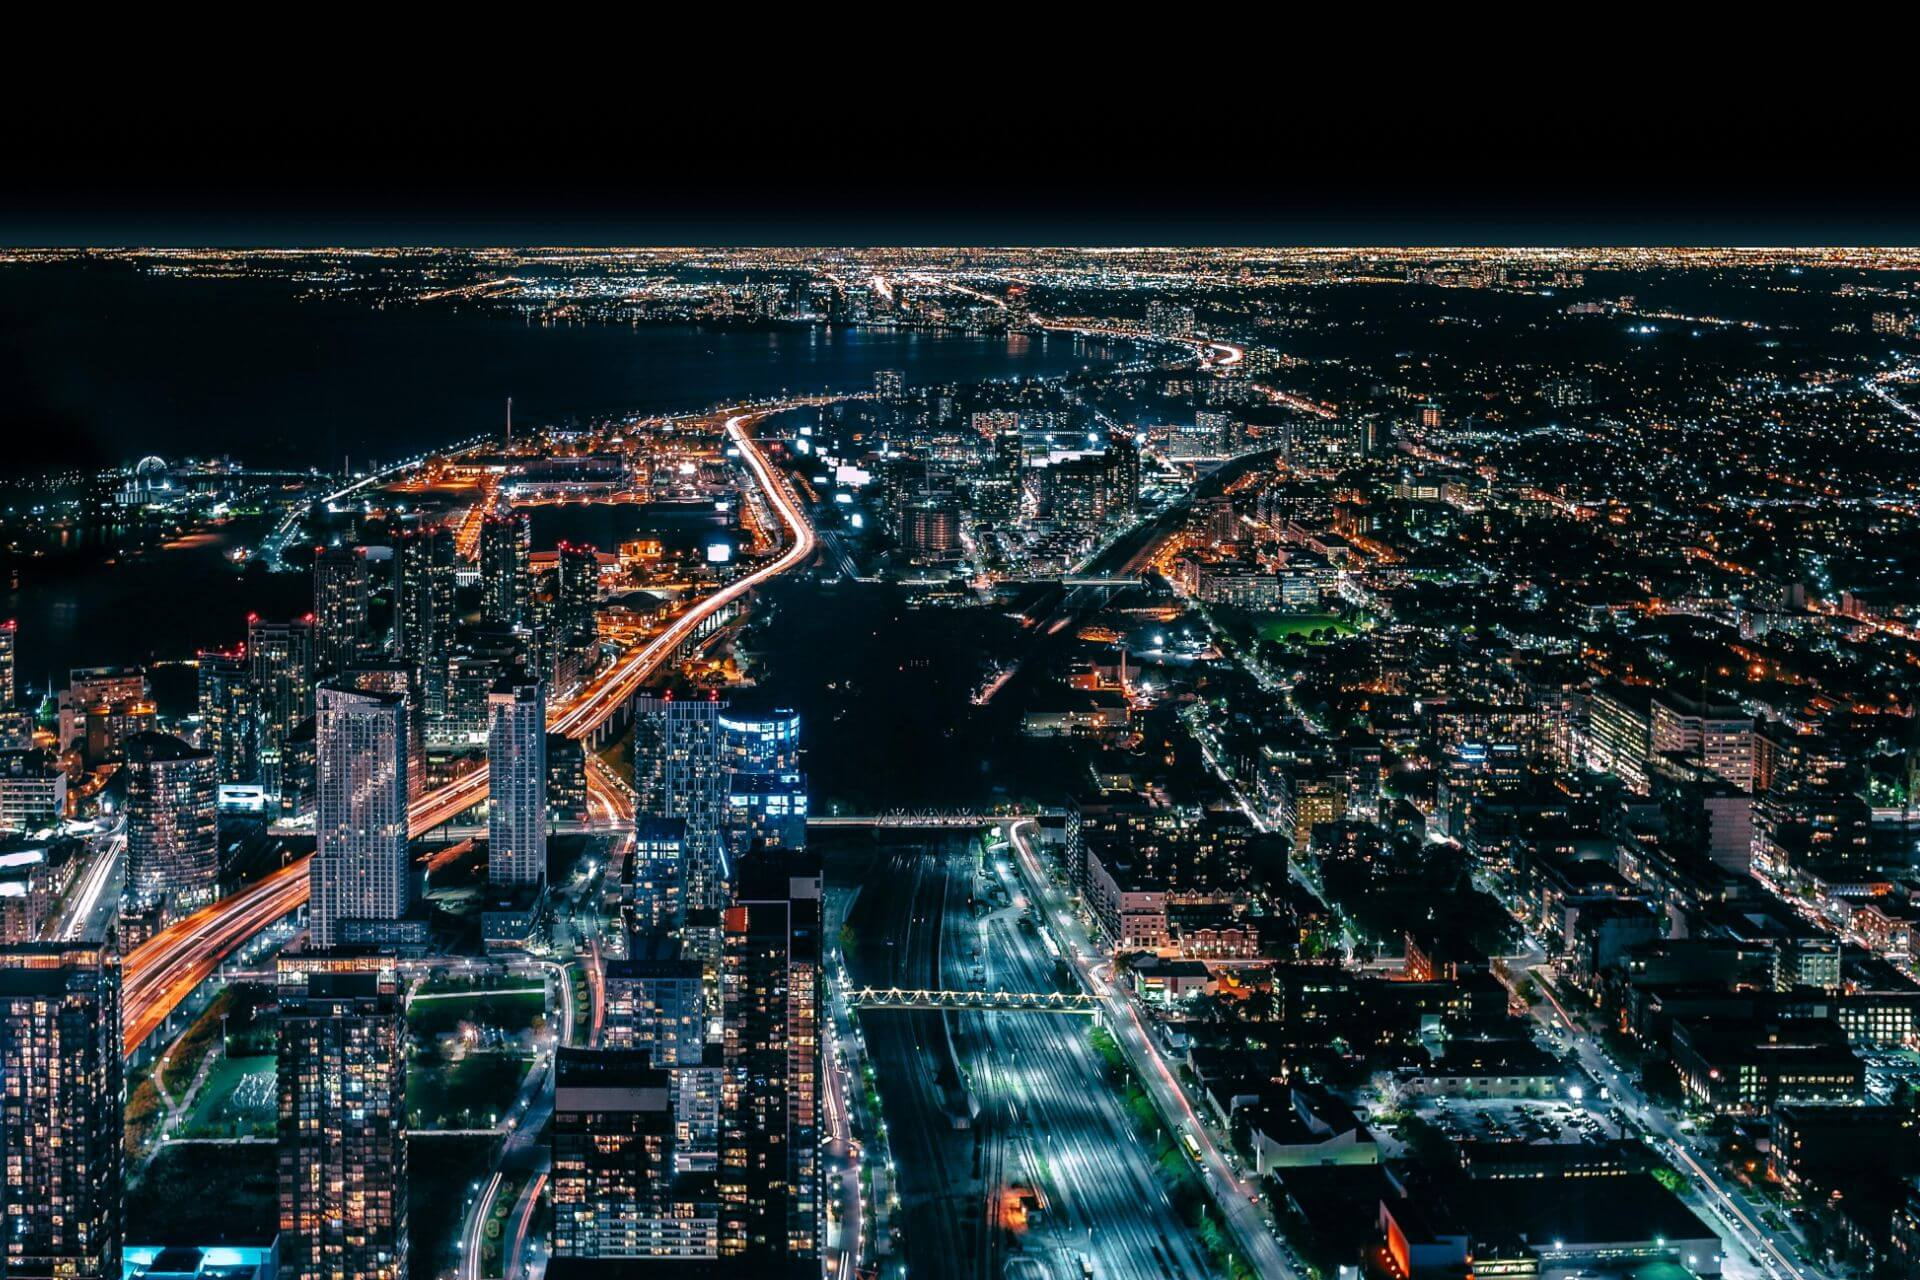 Birds eye view of a twinkling city at night time